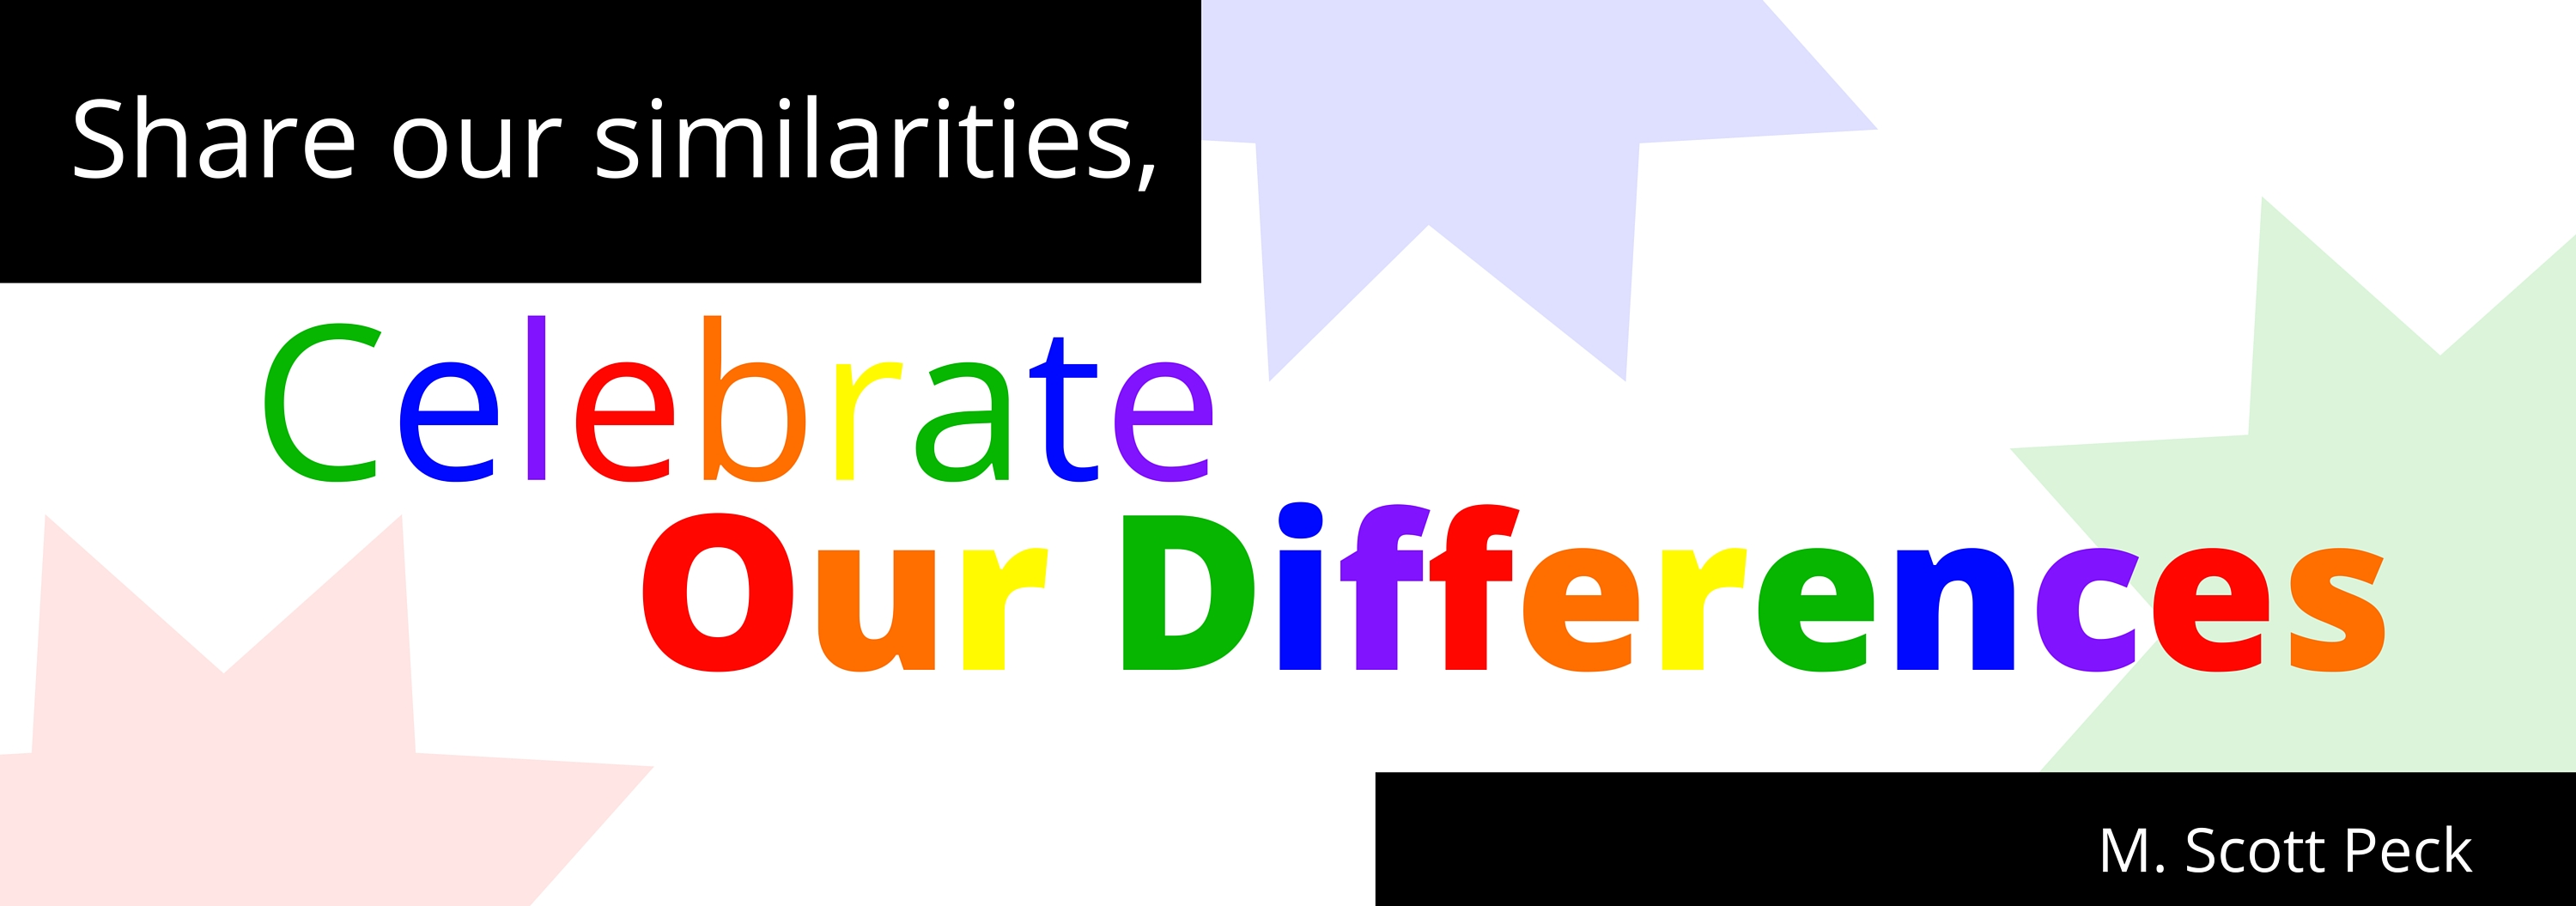 Share our similarities, celebrate  our differences header